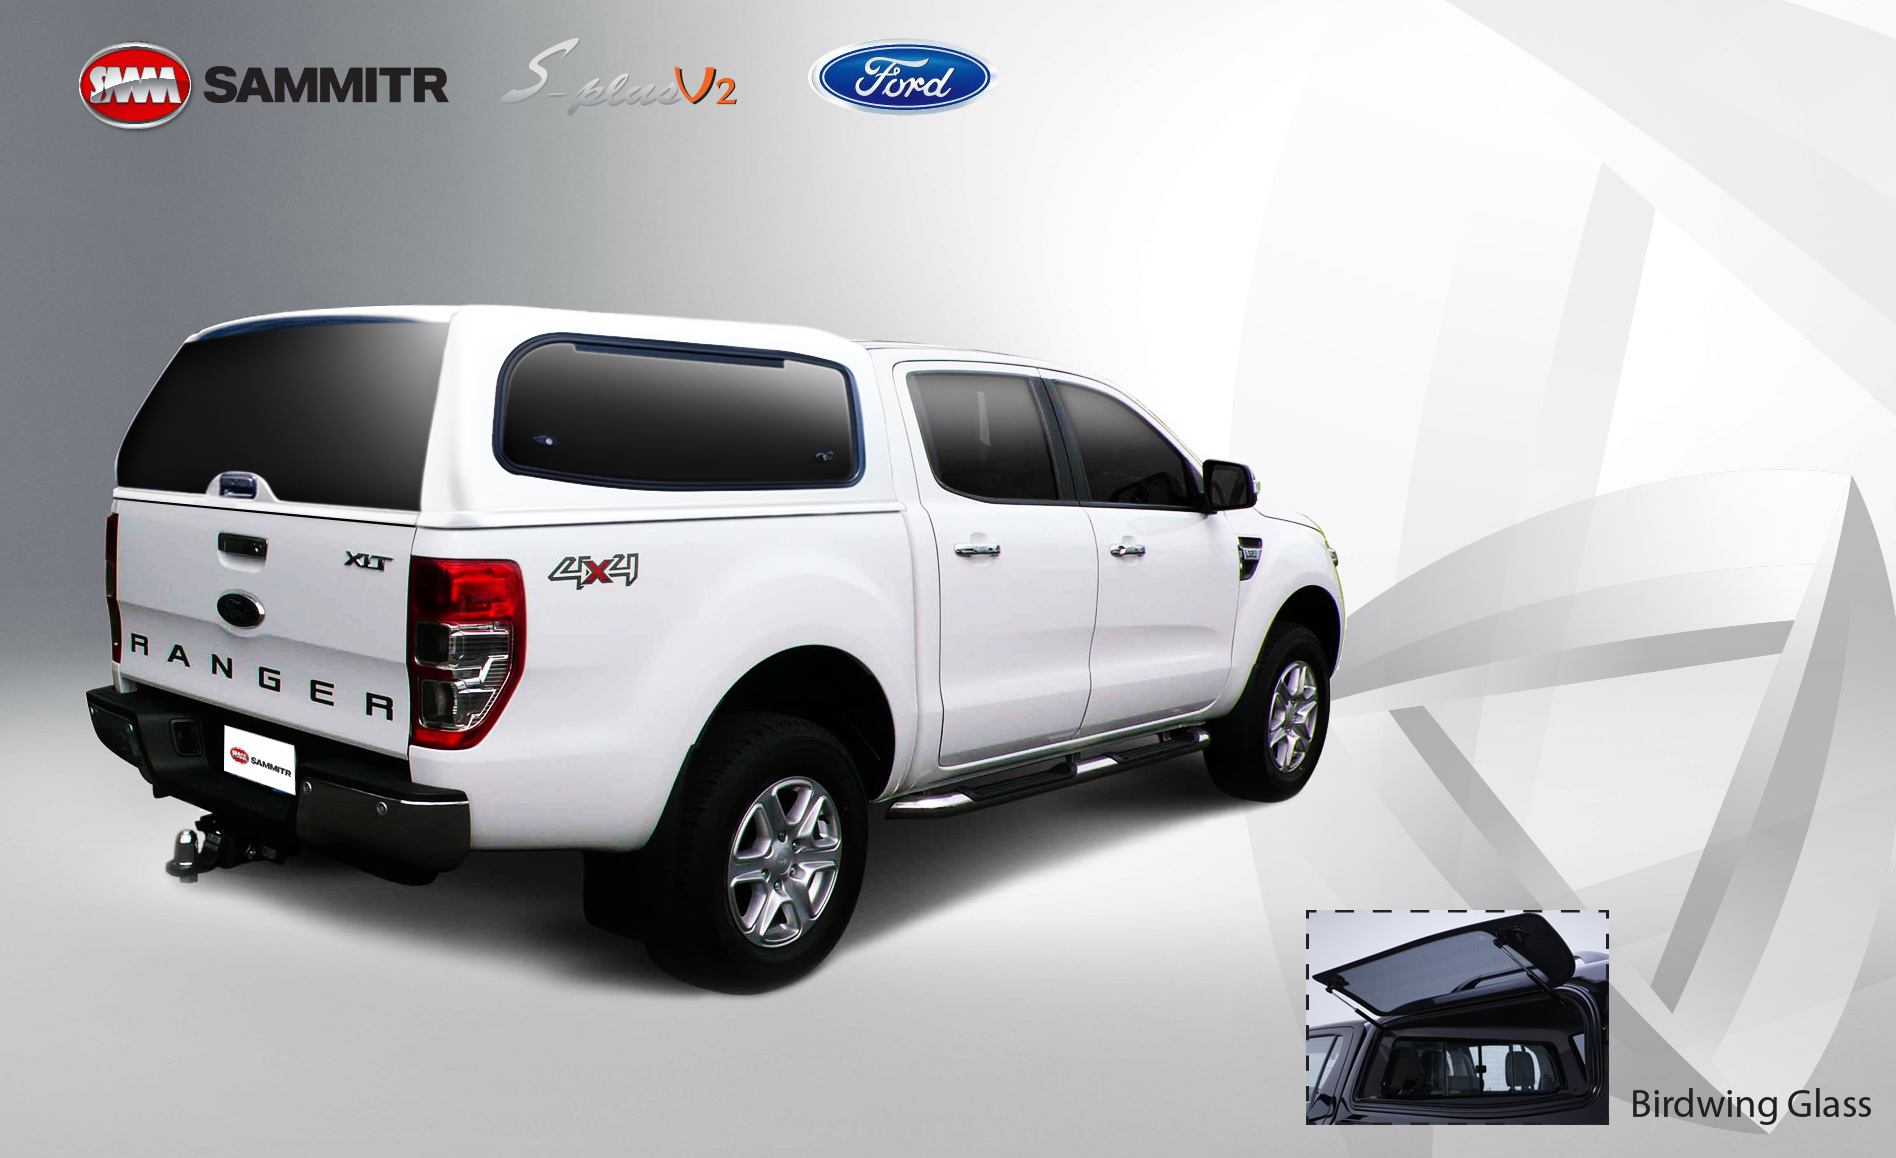 Ford Ford Ranger 2012-2016 V2 Doublecab Glass Bird Wing Window